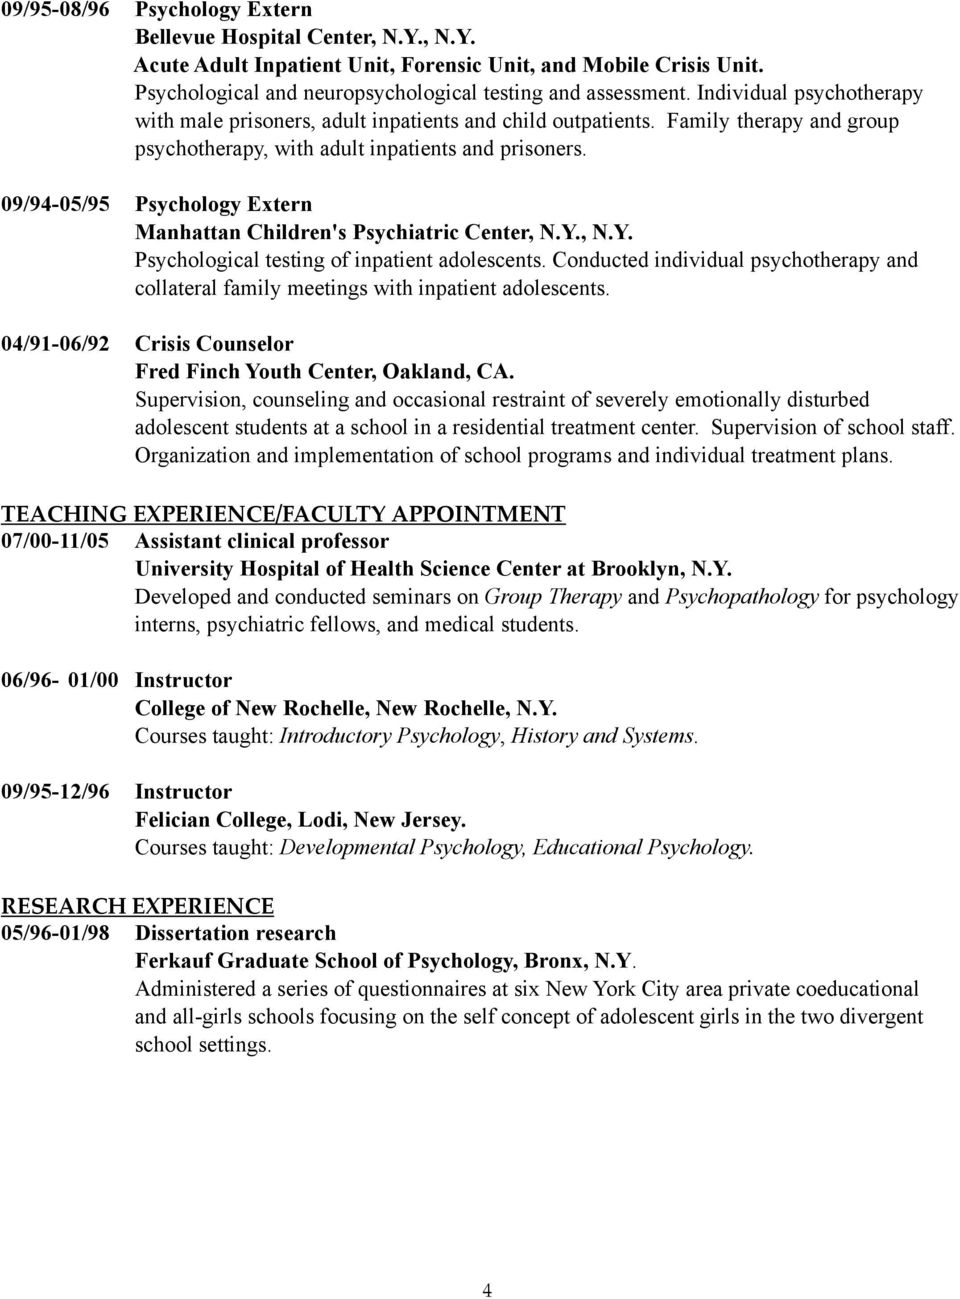 09/94-05/95 Psychology Extern Manhattan Children's Psychiatric Center, N.Y., N.Y. Psychological testing of inpatient adolescents.